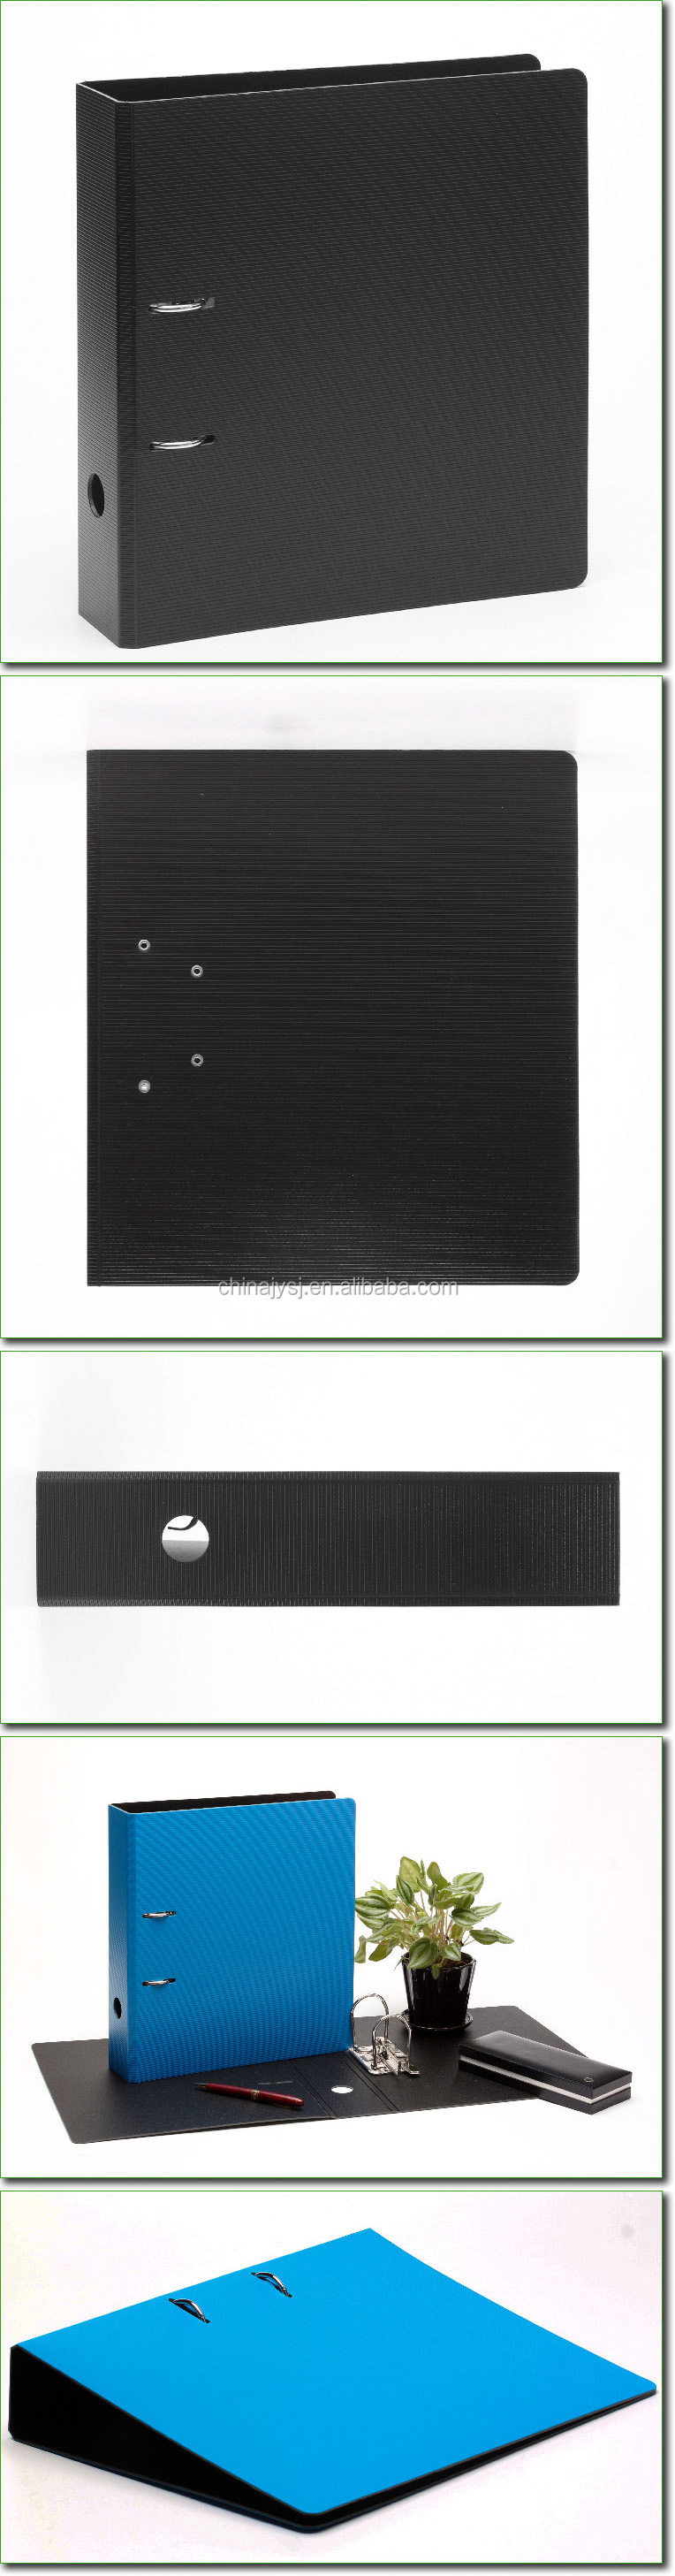 Stationery Office PP/PVC/Cardboard Black 3' A4 Lever Arch File